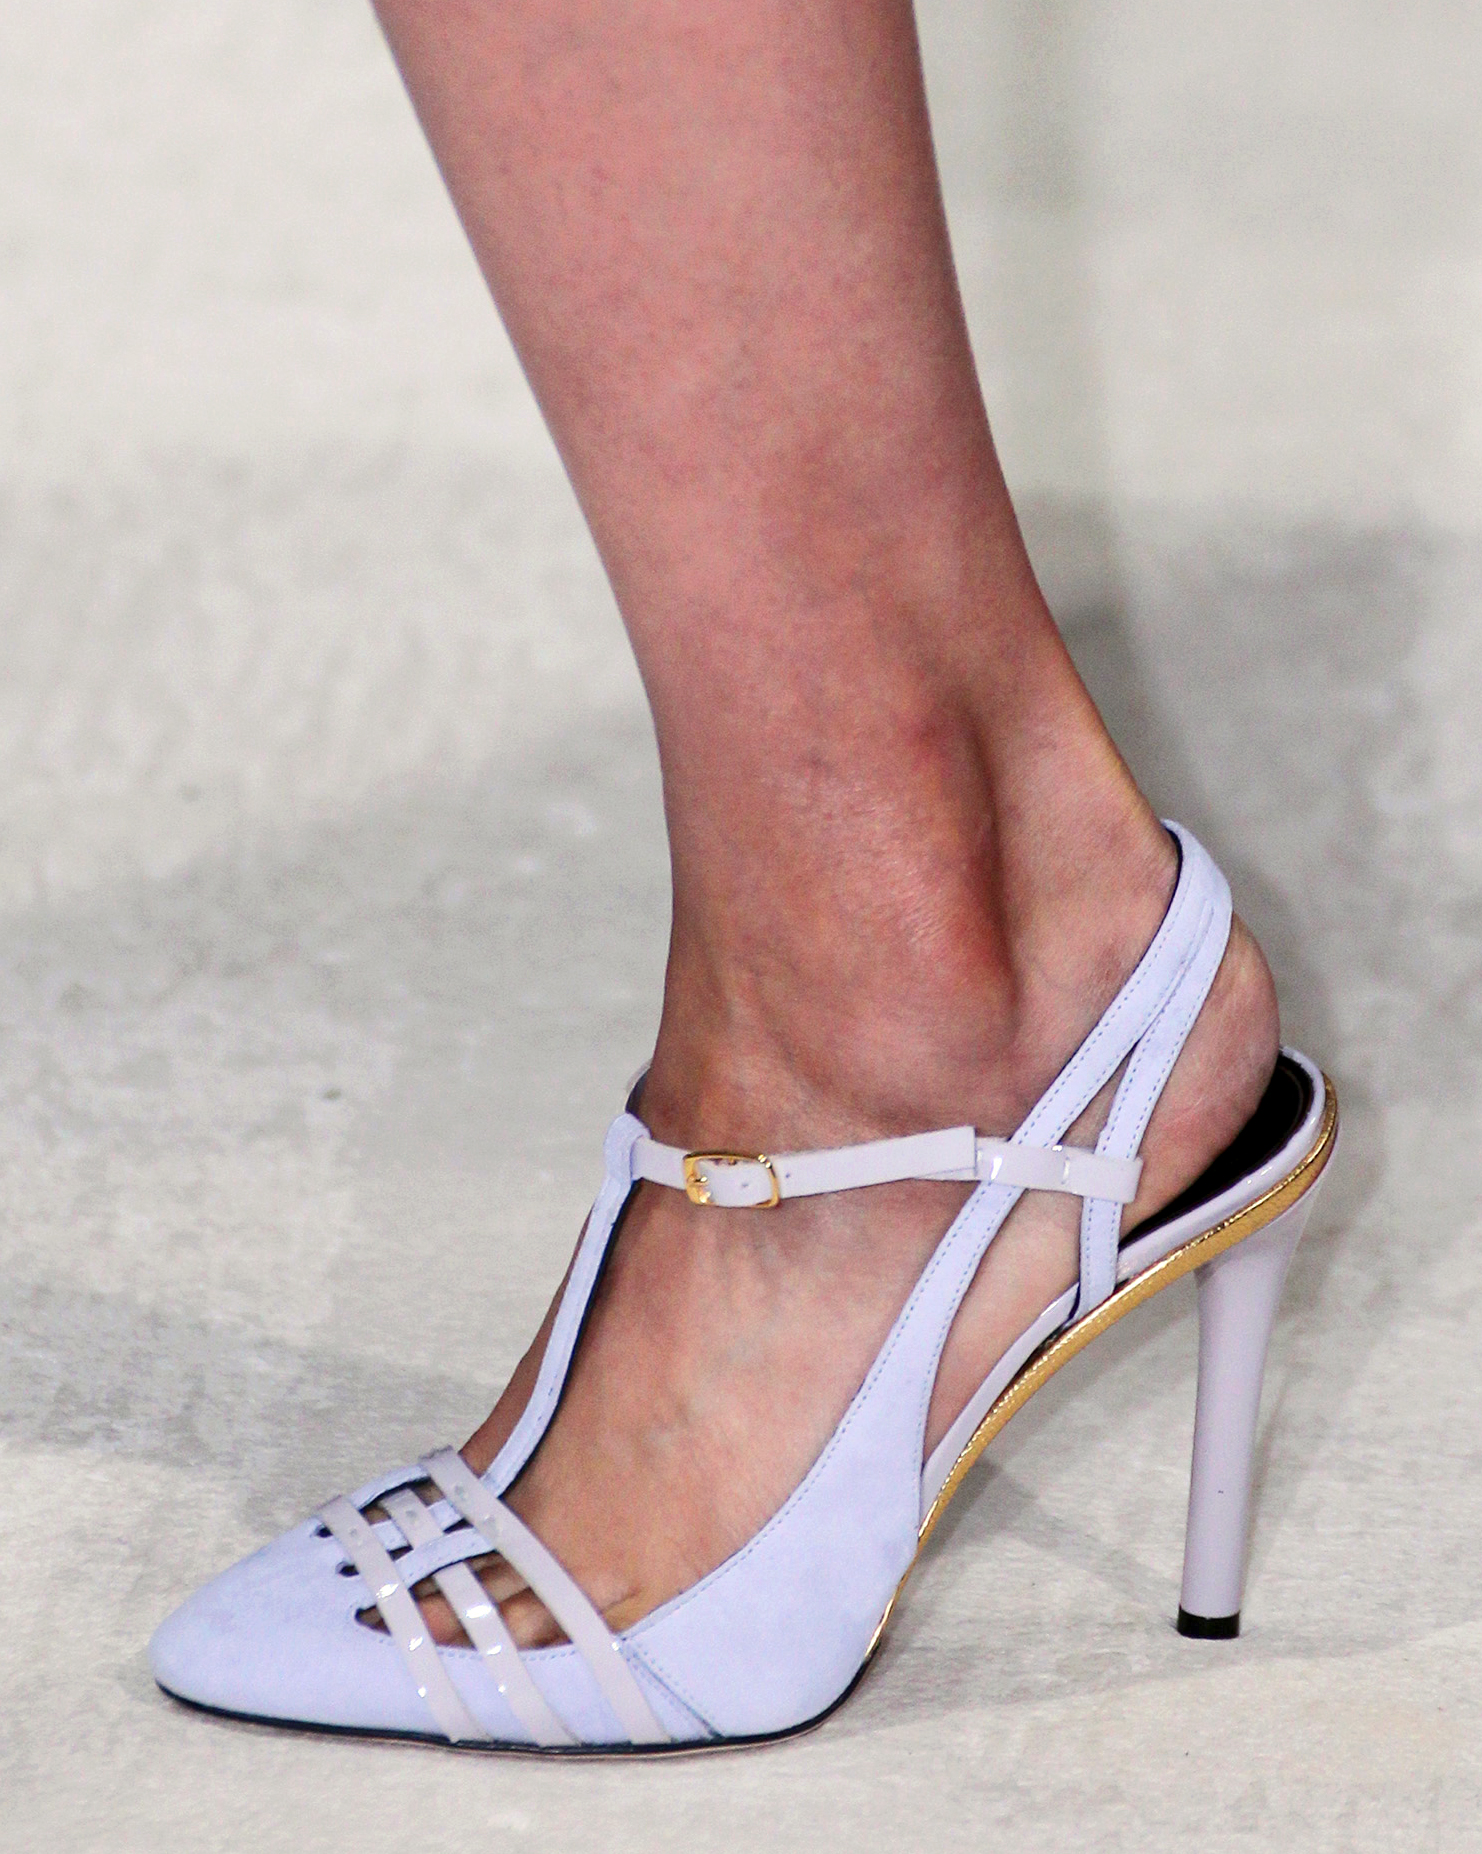 sp16-nyfw-bridal-accessories-oscar-de-la-renta-shoes-0915.jpg